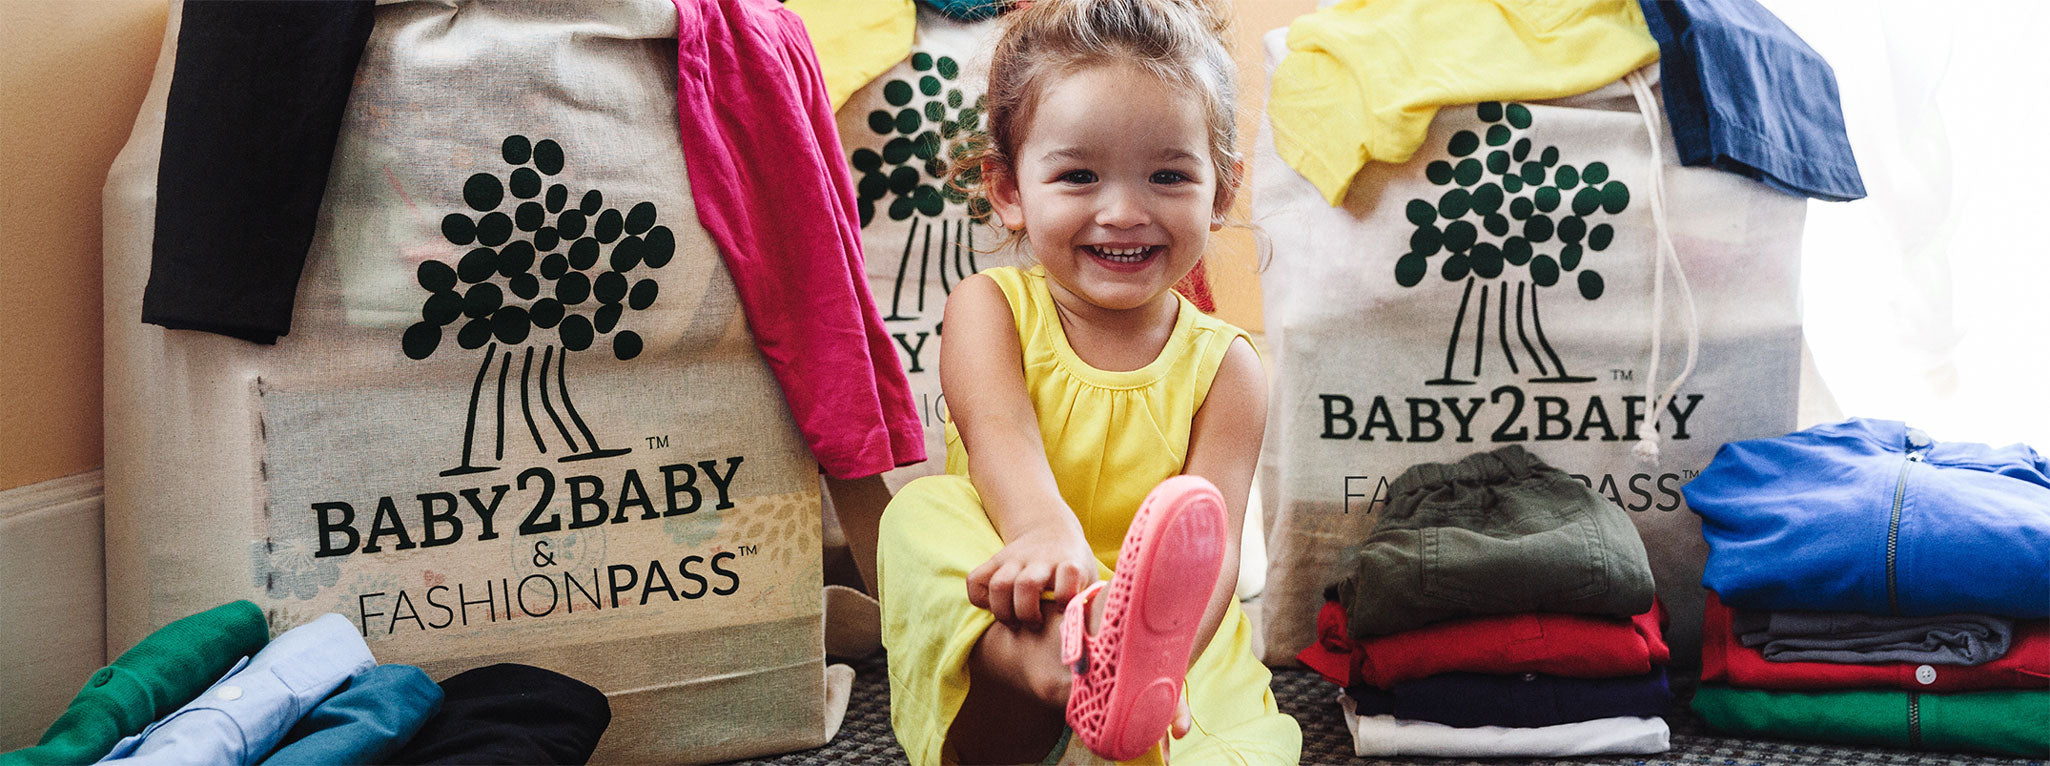 Girl wearing FashionPass sponsored Baby2Baby clothing dress donation